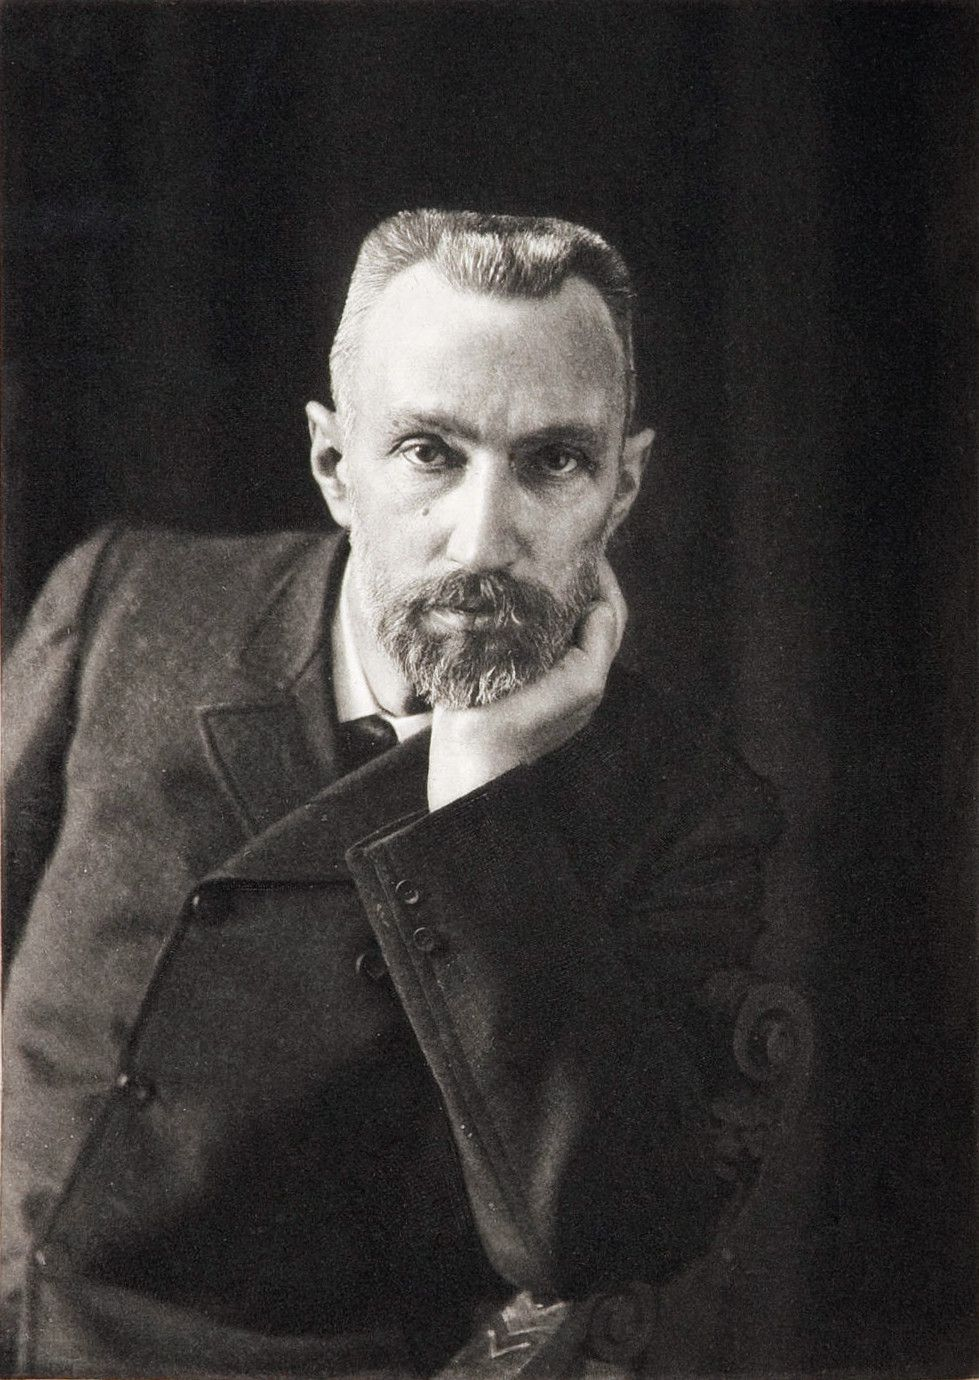 a biography and life work of pierre curie a french physicist Marie curie was born maria french physicist antoine henri becquerel discovered natural radioactivity marie and pierre curie shared the nobel prize.